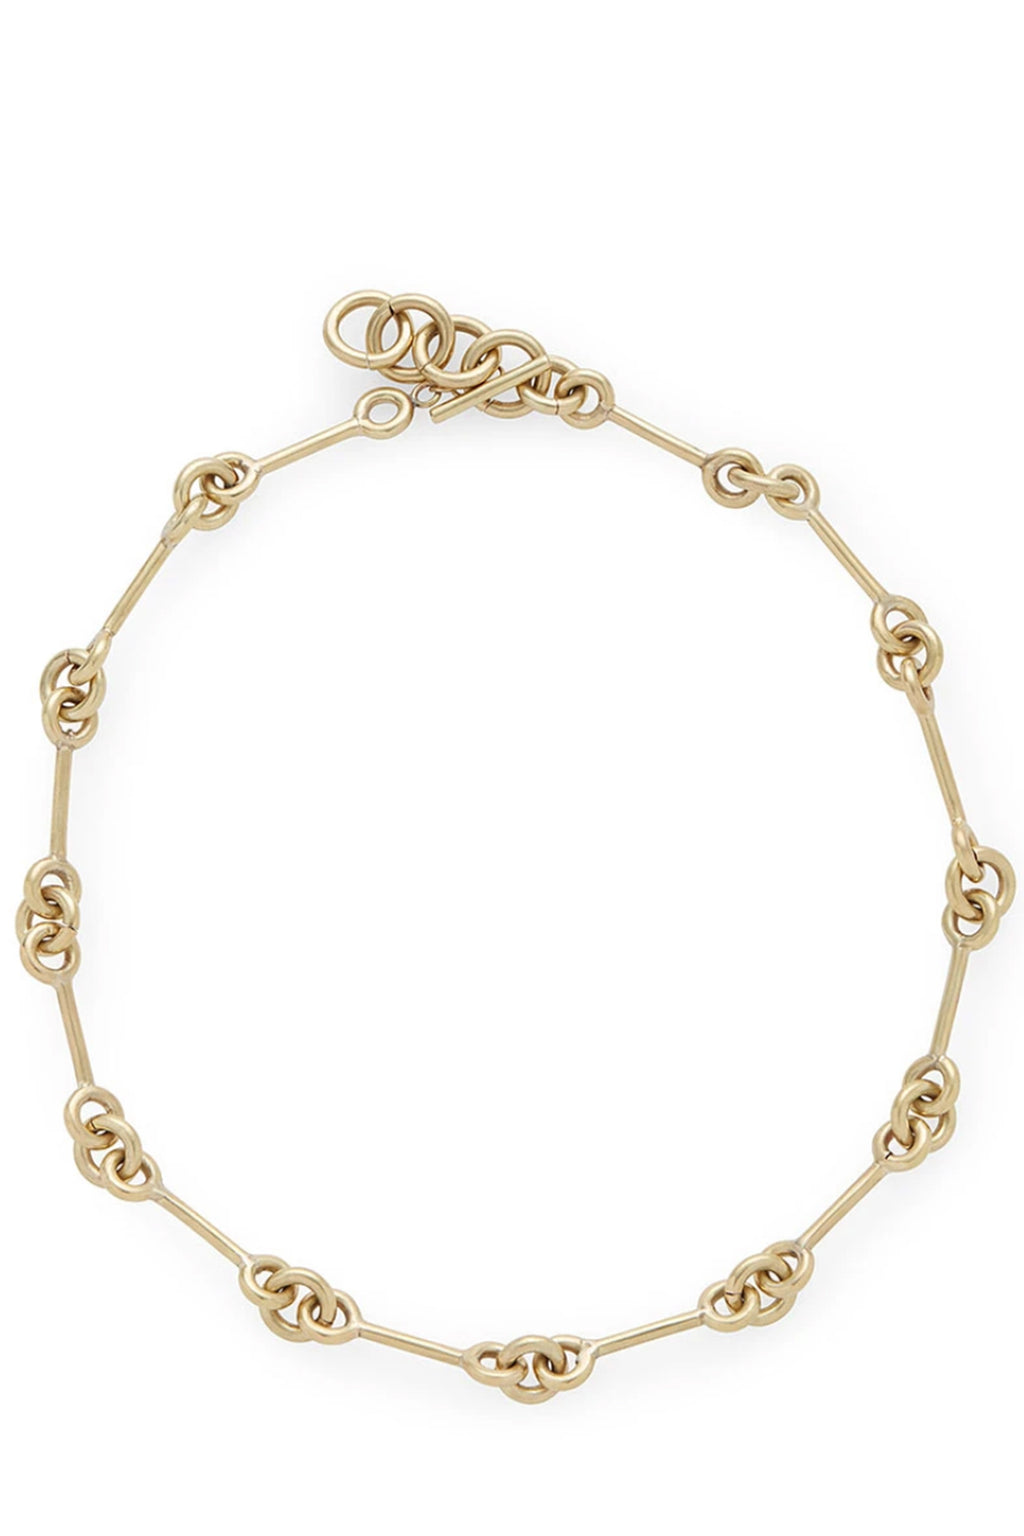 Soko Code Collar Necklace in Brass